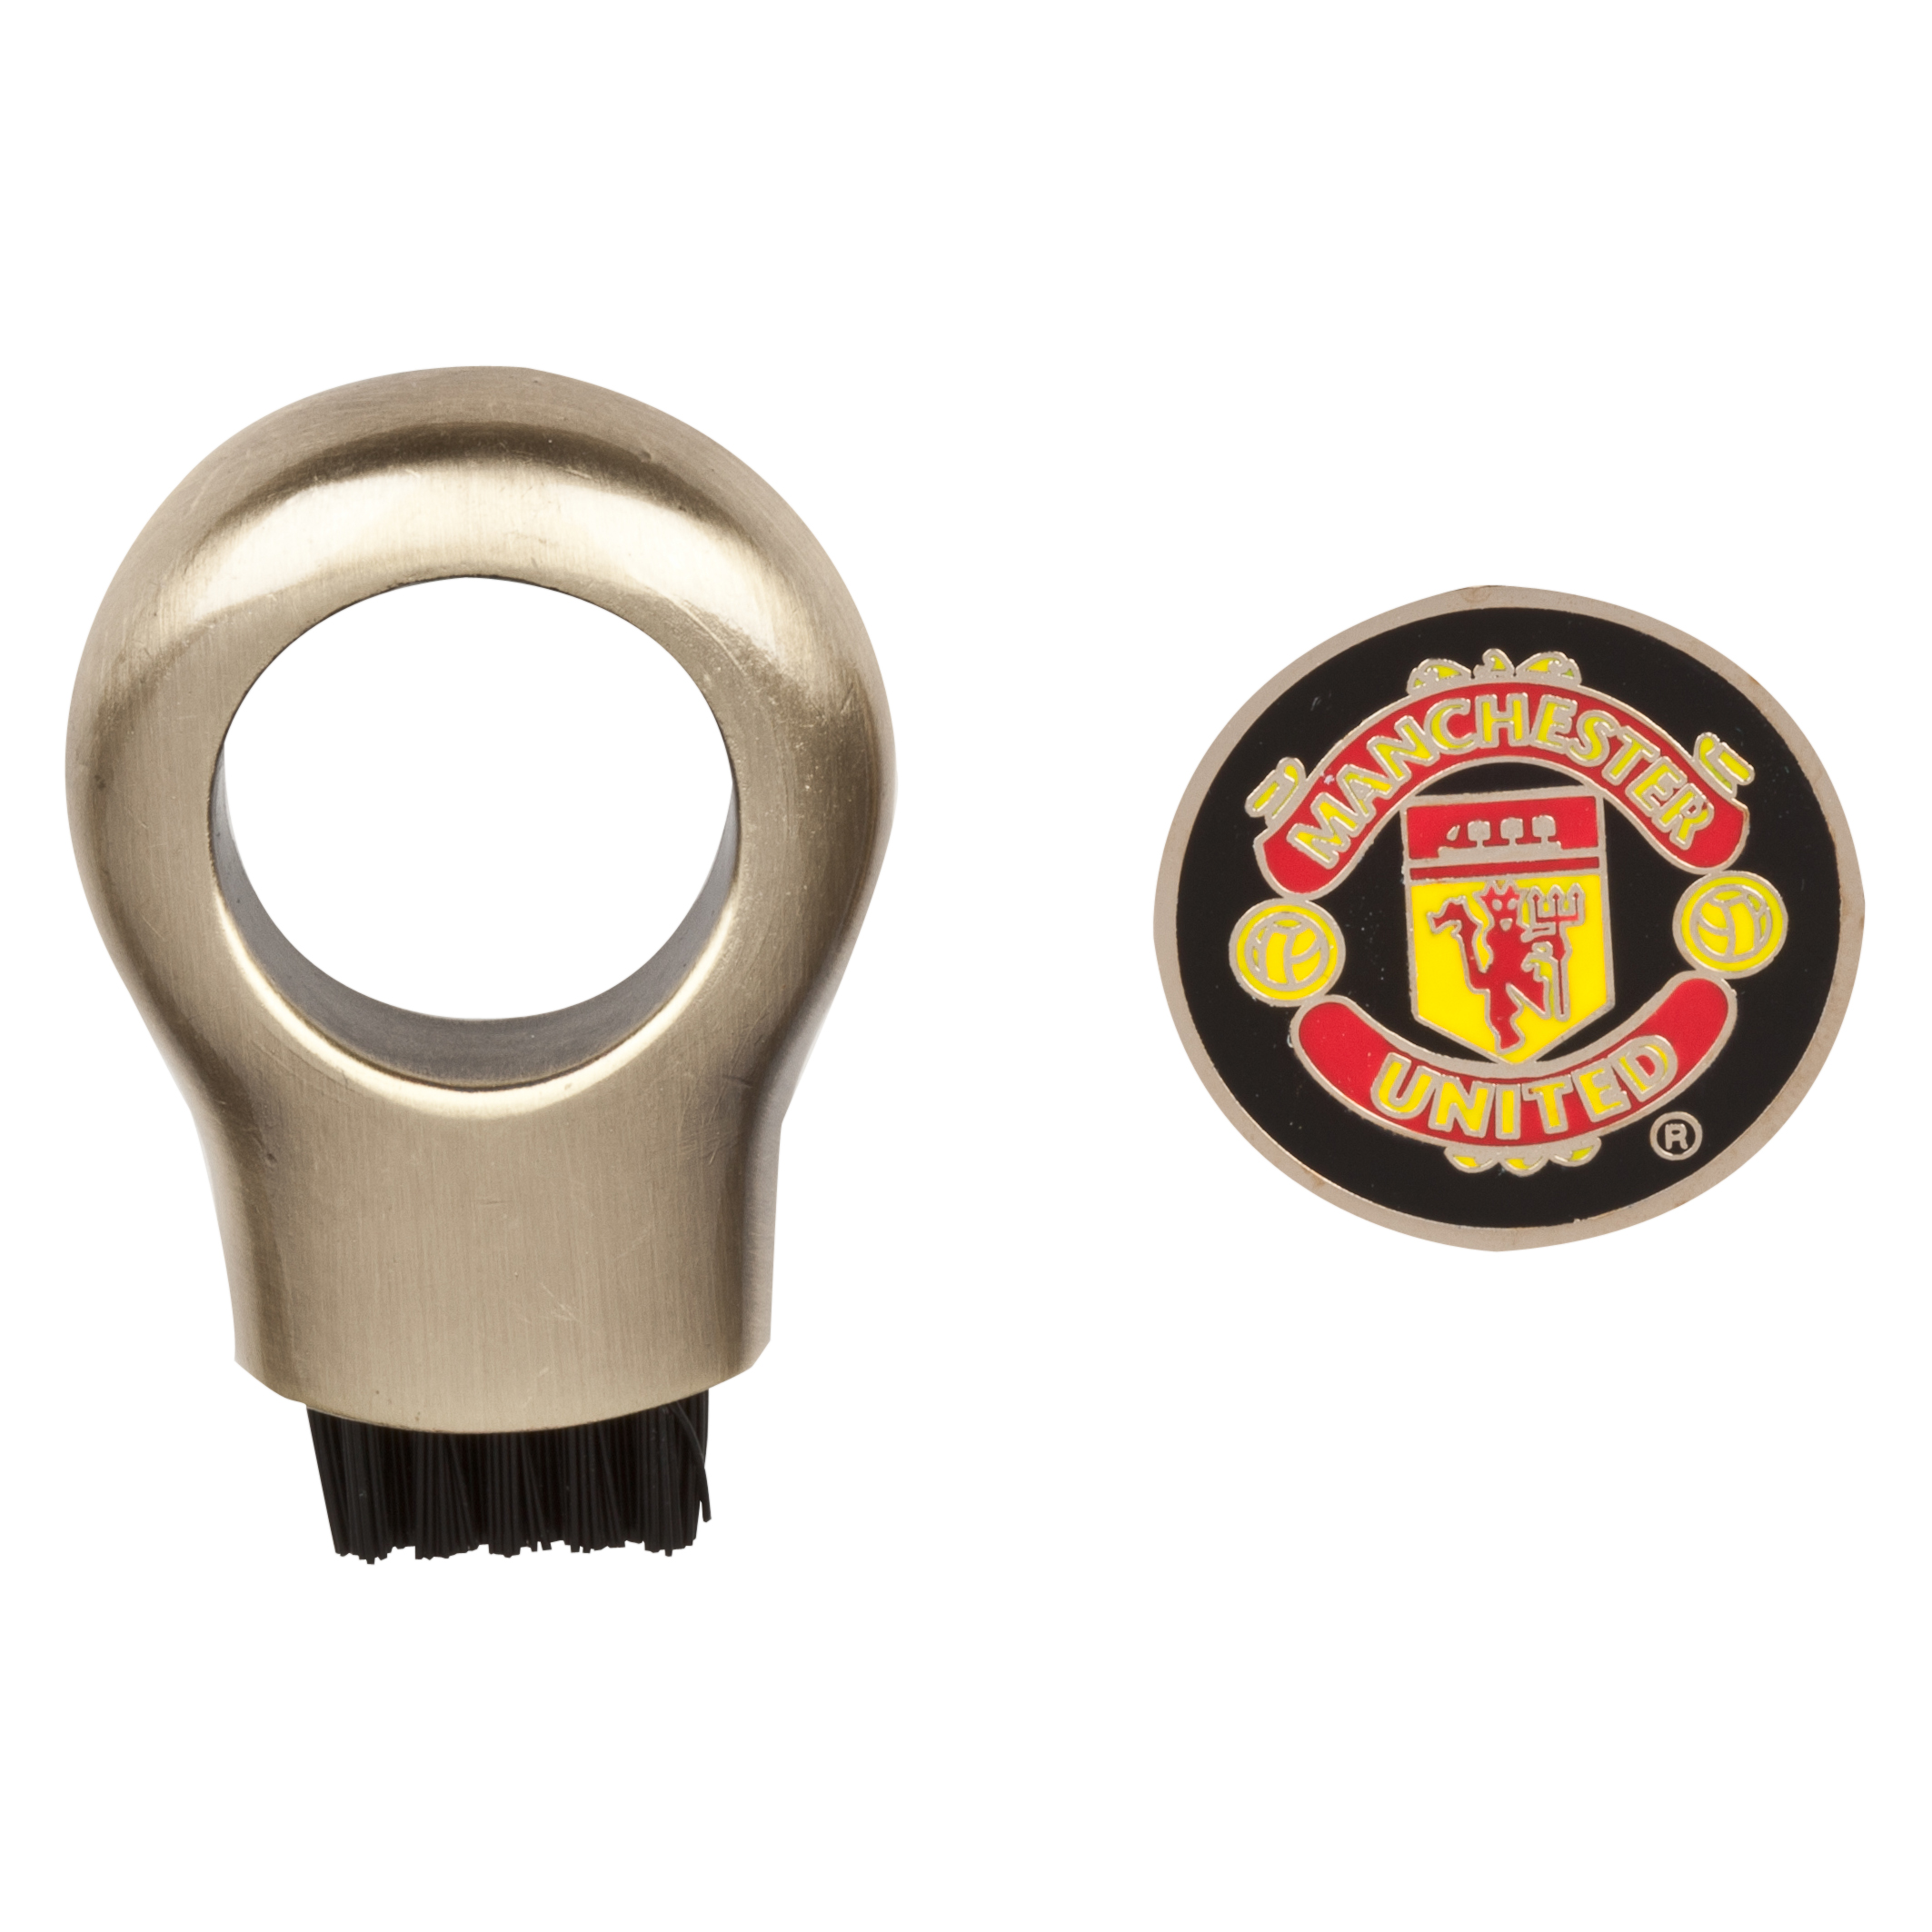 Manchester United Golf Club Cleaning Brush and Marker